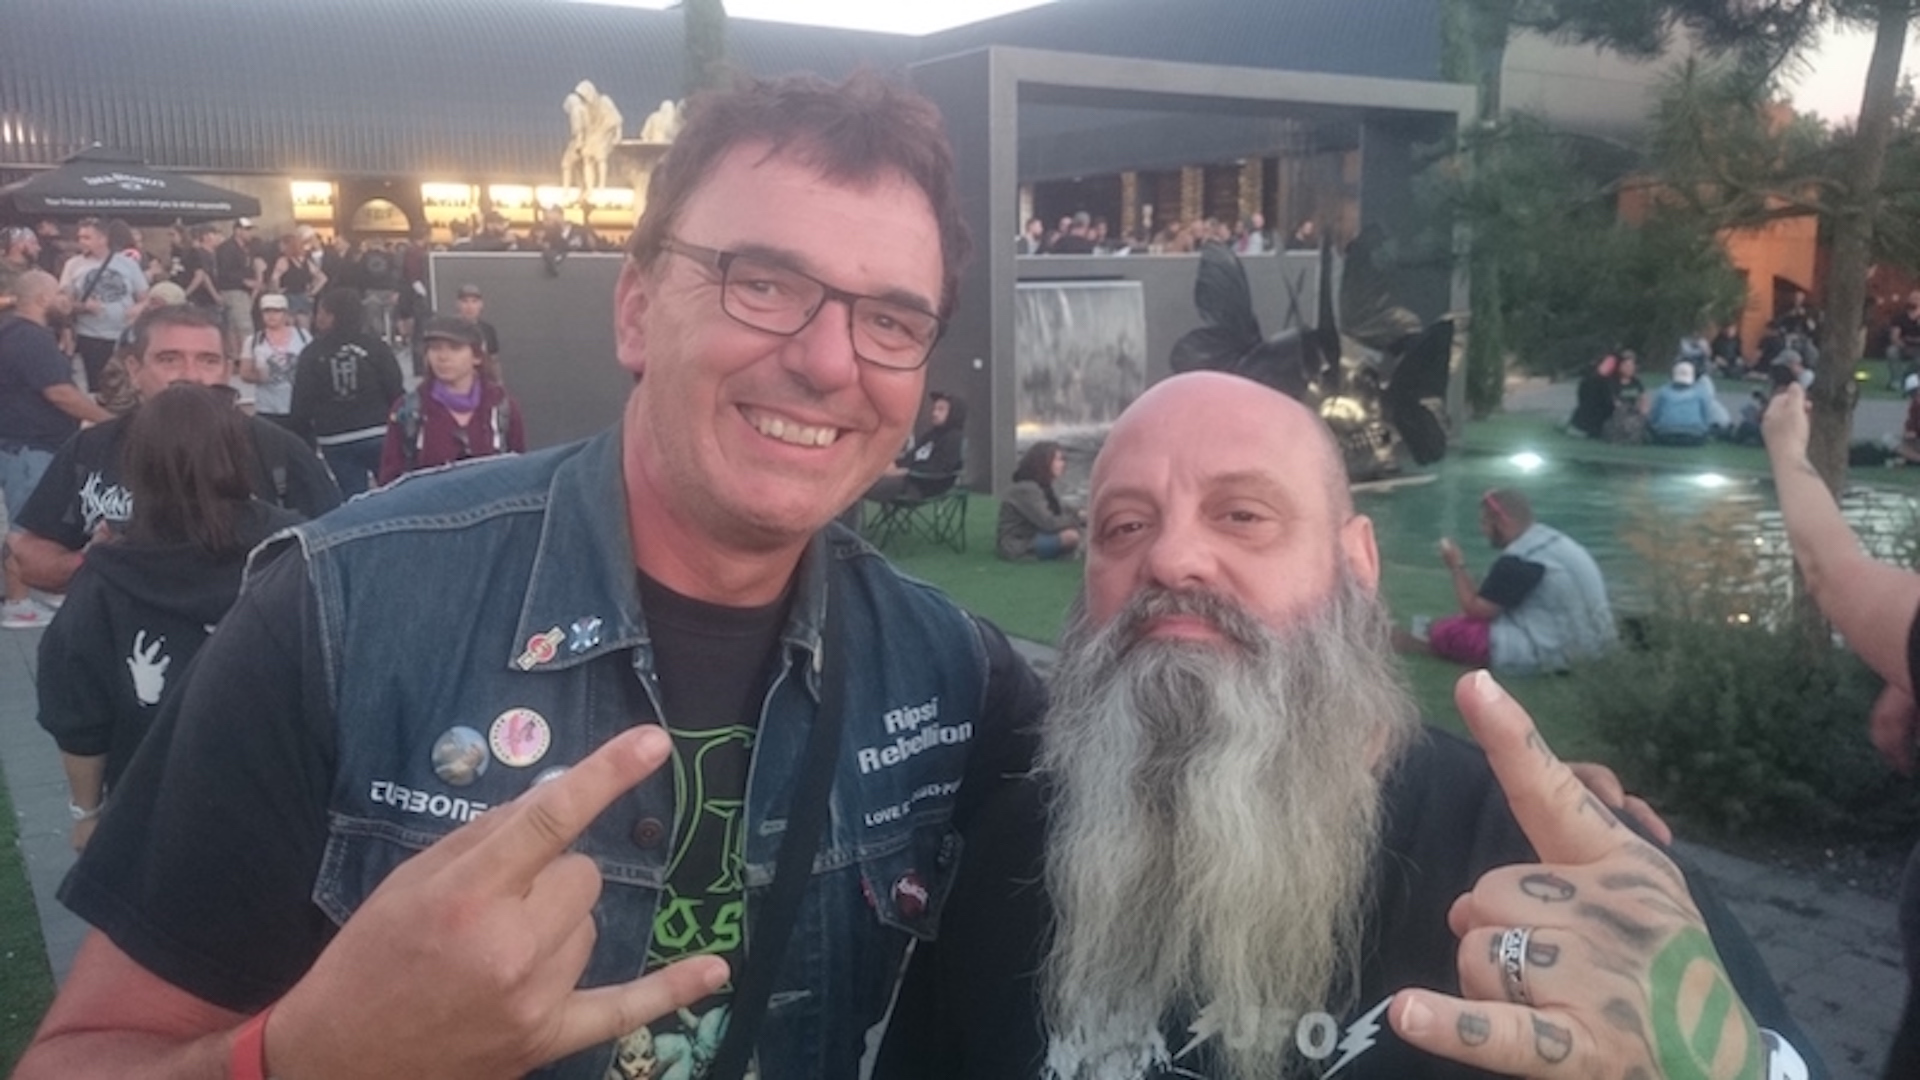 With Kirk winstein (Crowbar, Down), Hellfest 2018